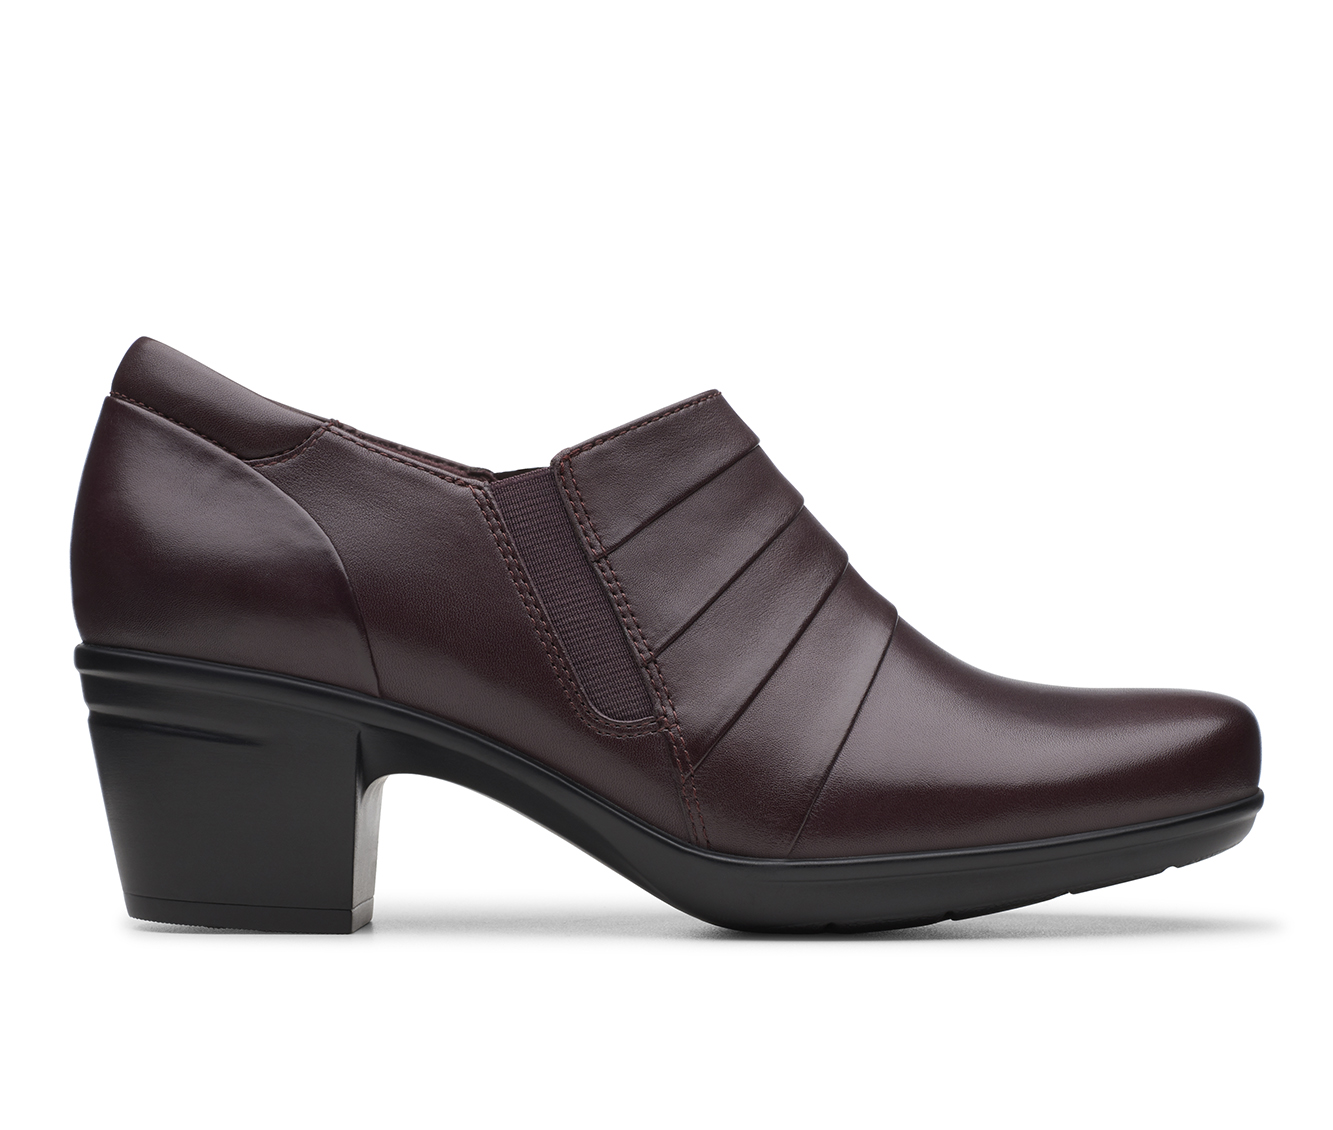 Clarks Emslie Guide Women's Shoe (Red Leather)